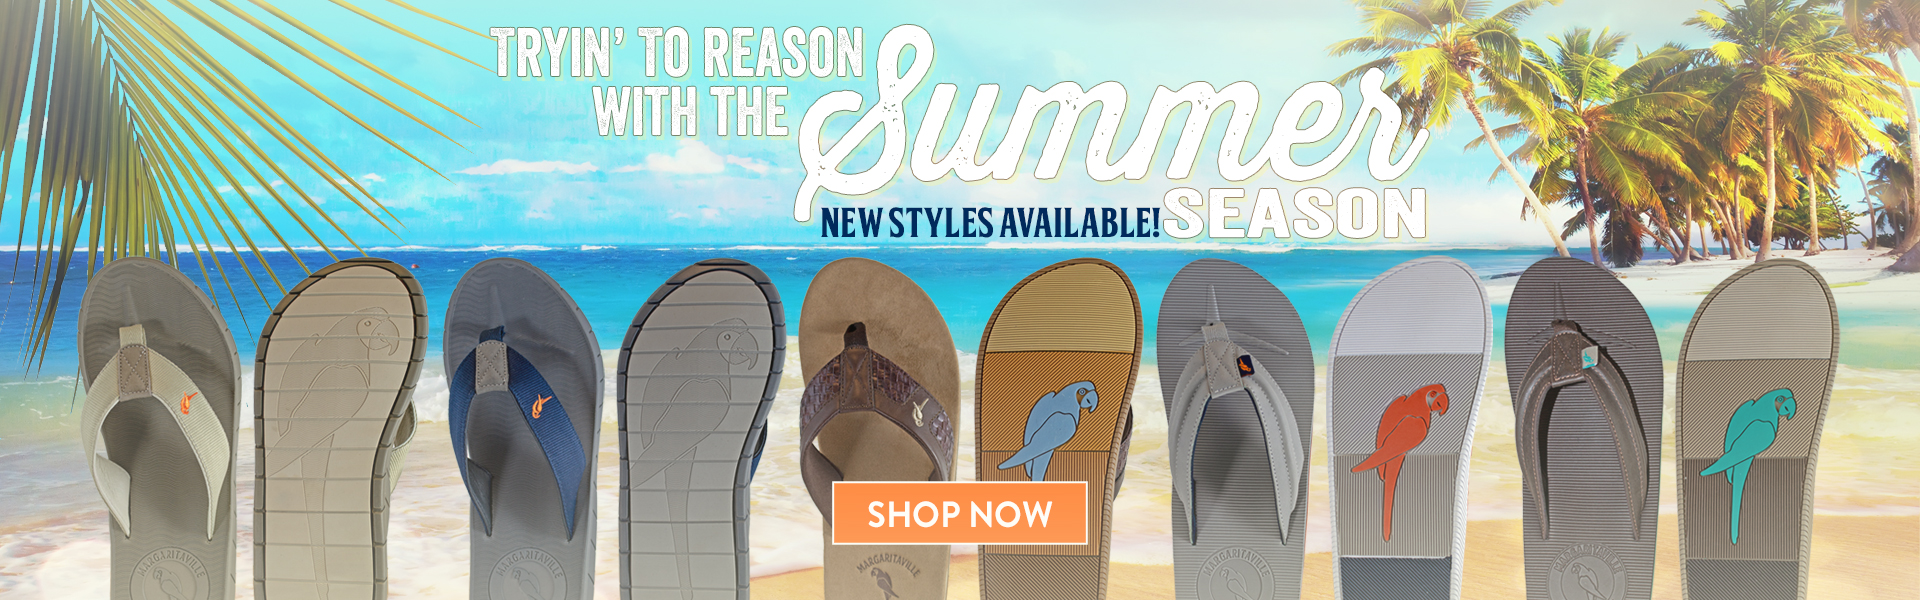 Summer Island Reserve Shoes